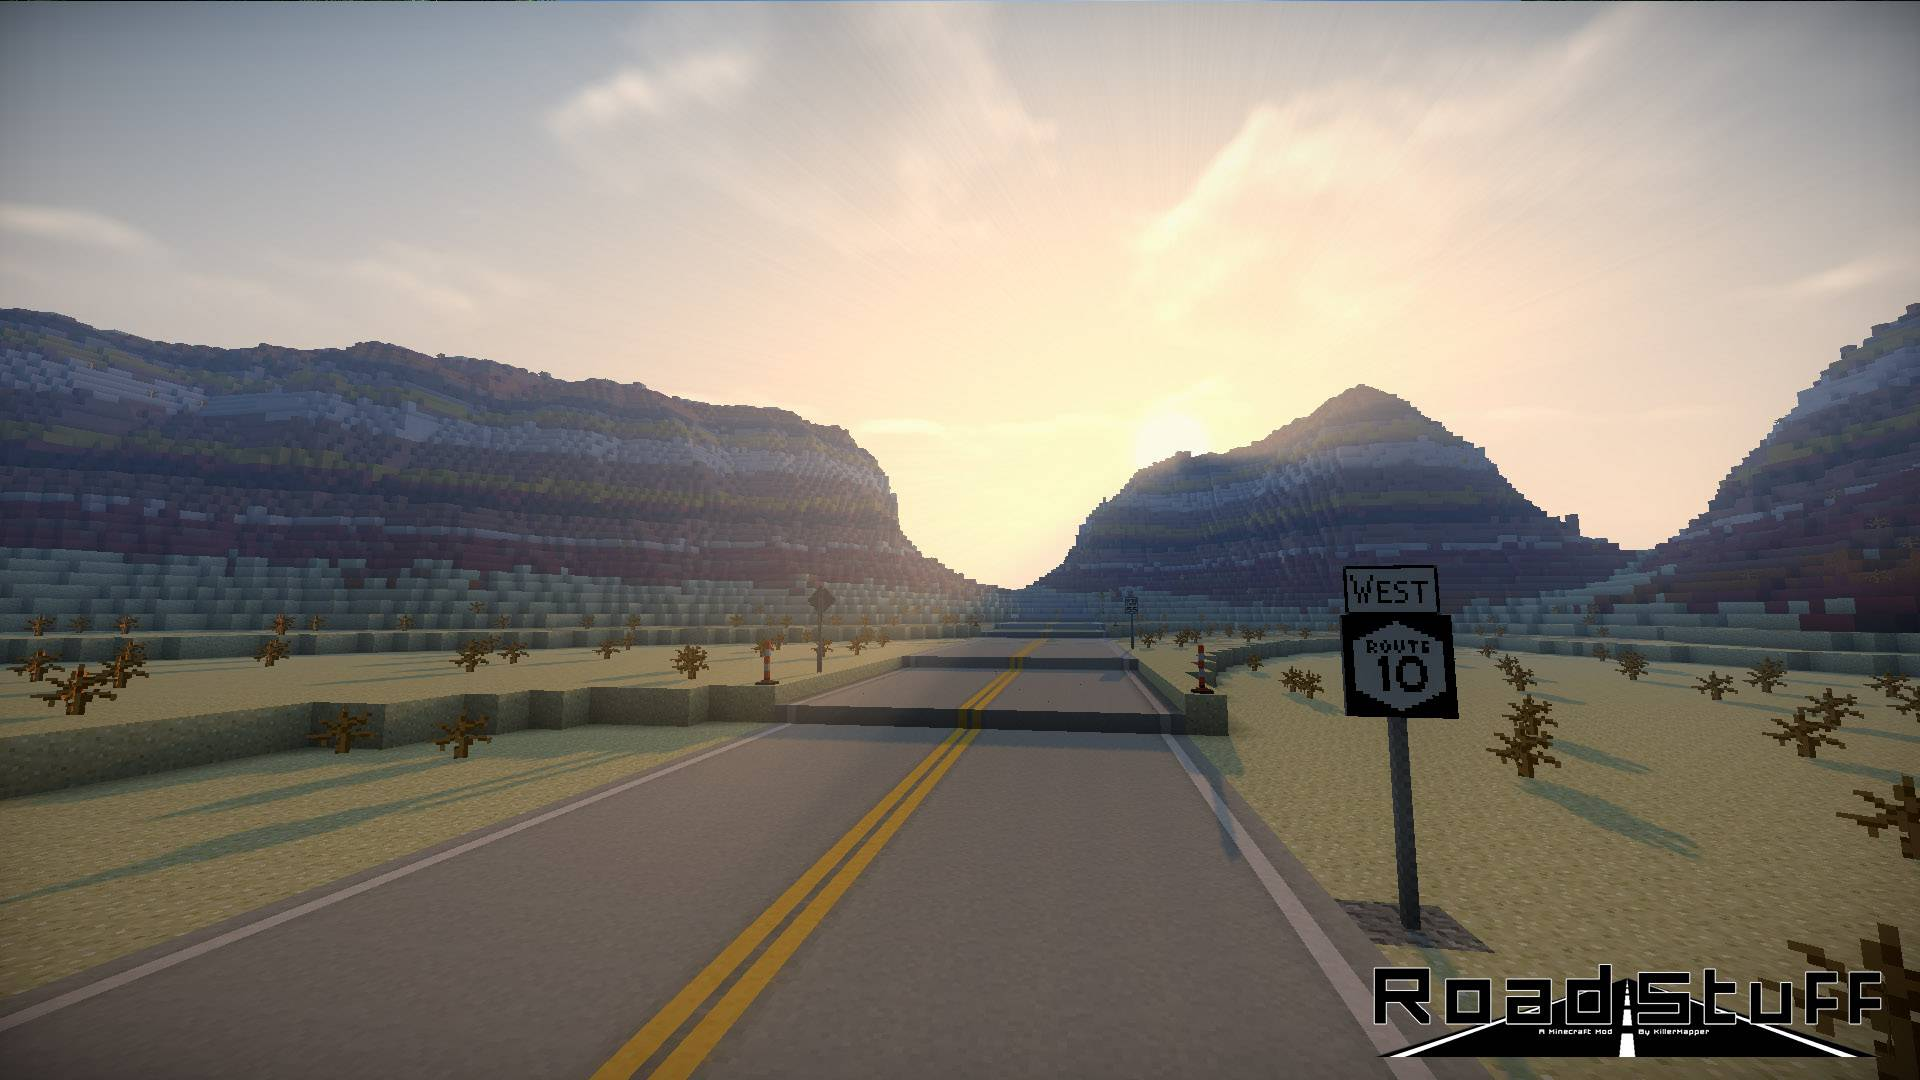 Road Stuffs 2 mod for minecraft 23